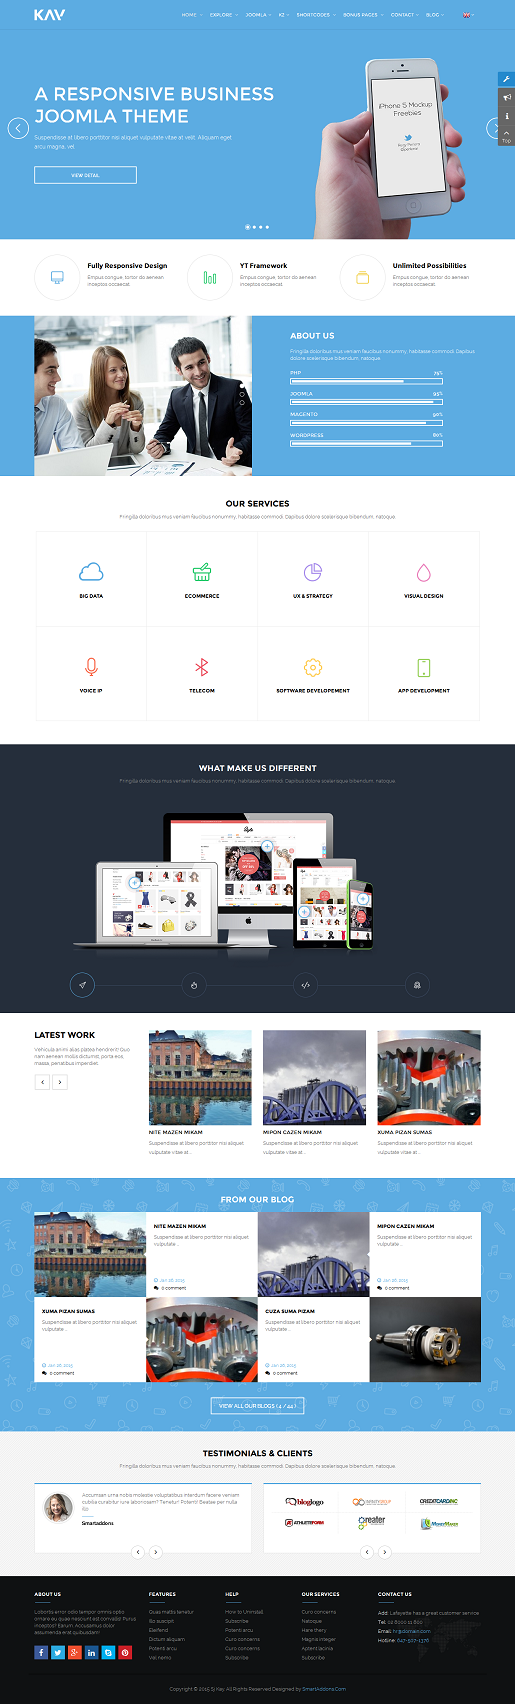 SJ Kay - Responsive Joomla Business Template - 02_index.png